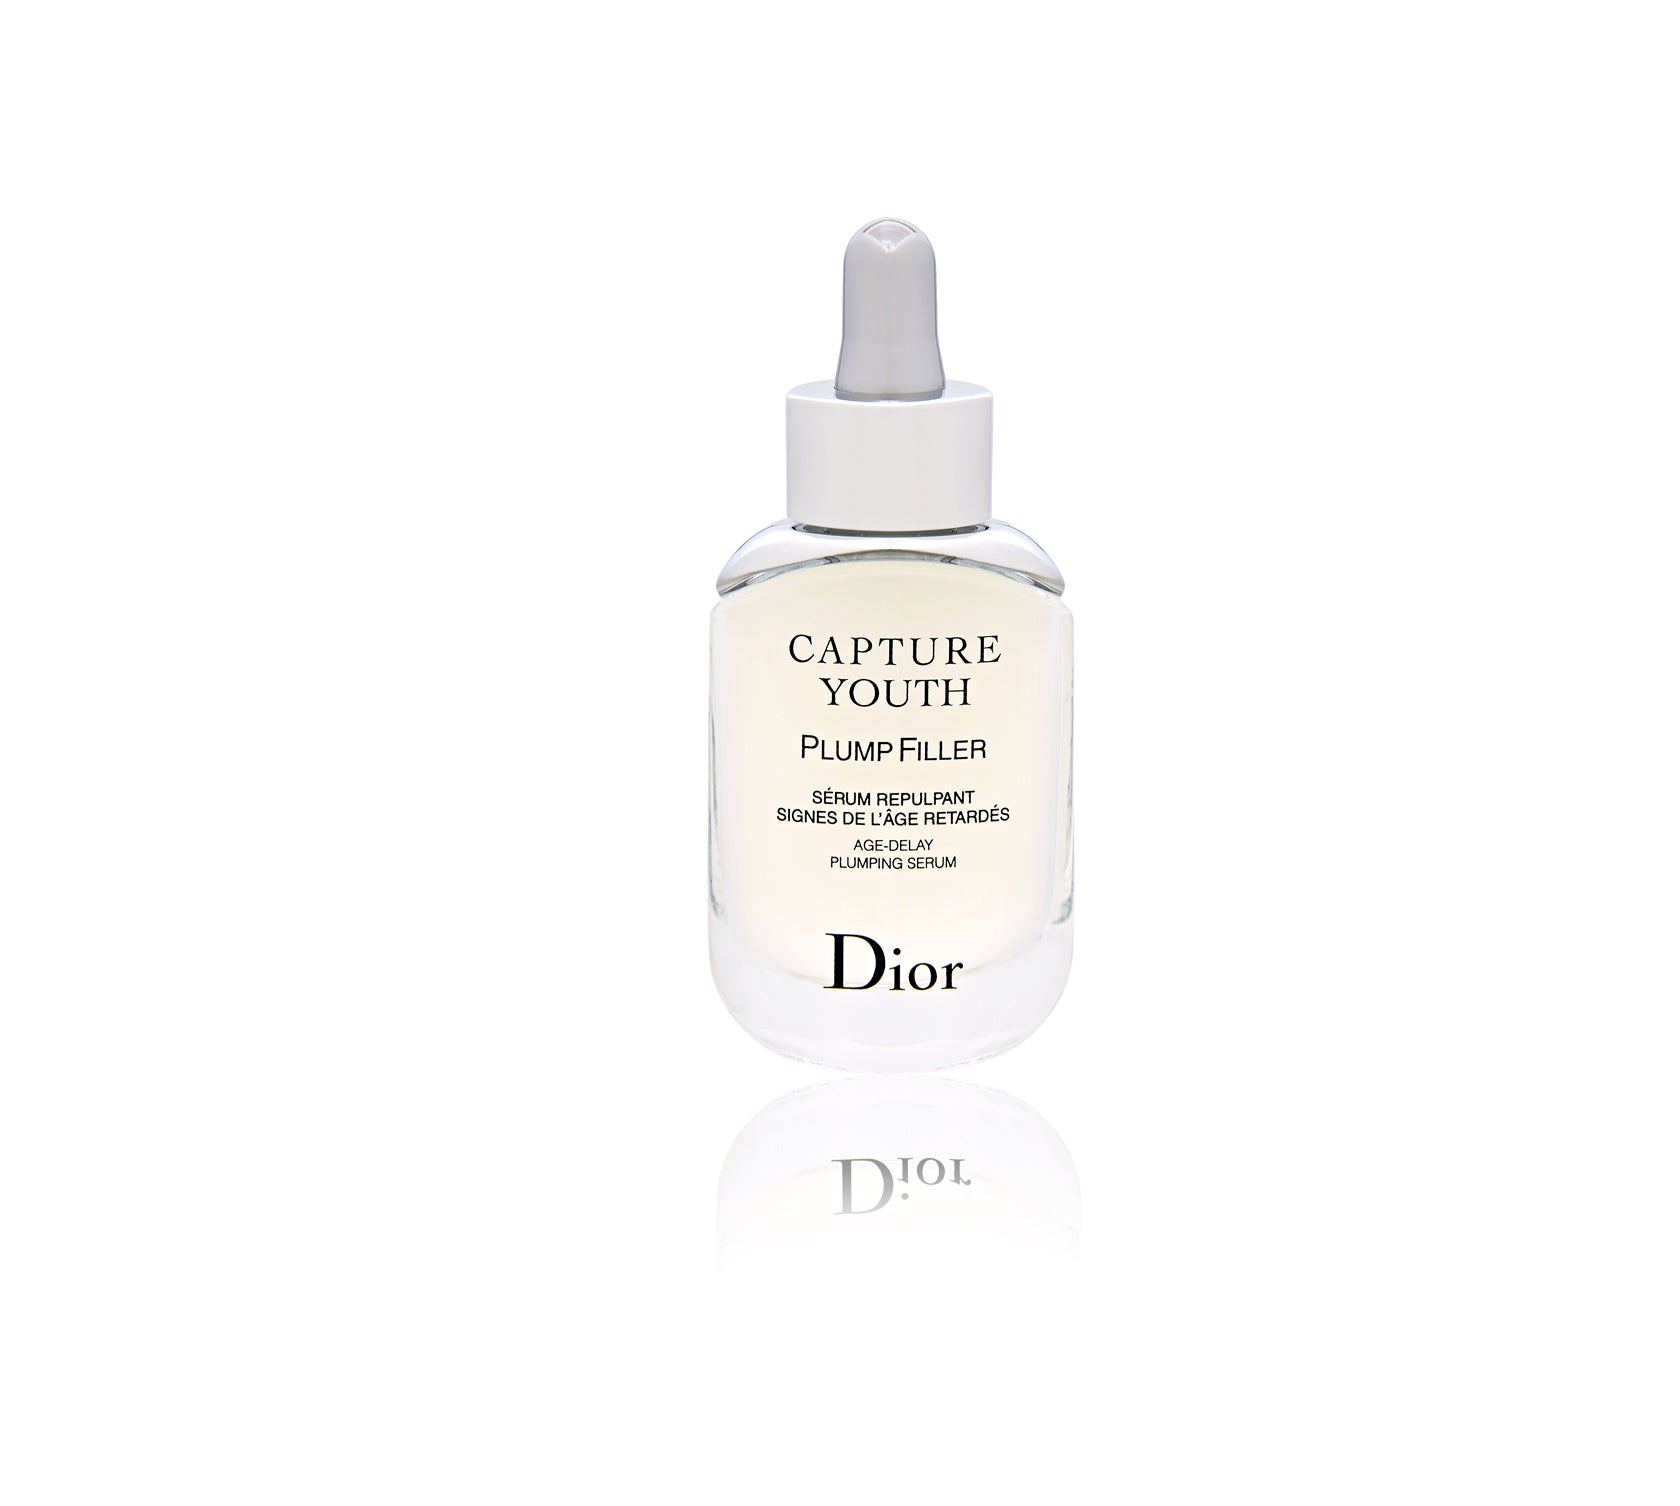 a3050eac Capture Youth Plump Filler Age-Delay Plumping Serum